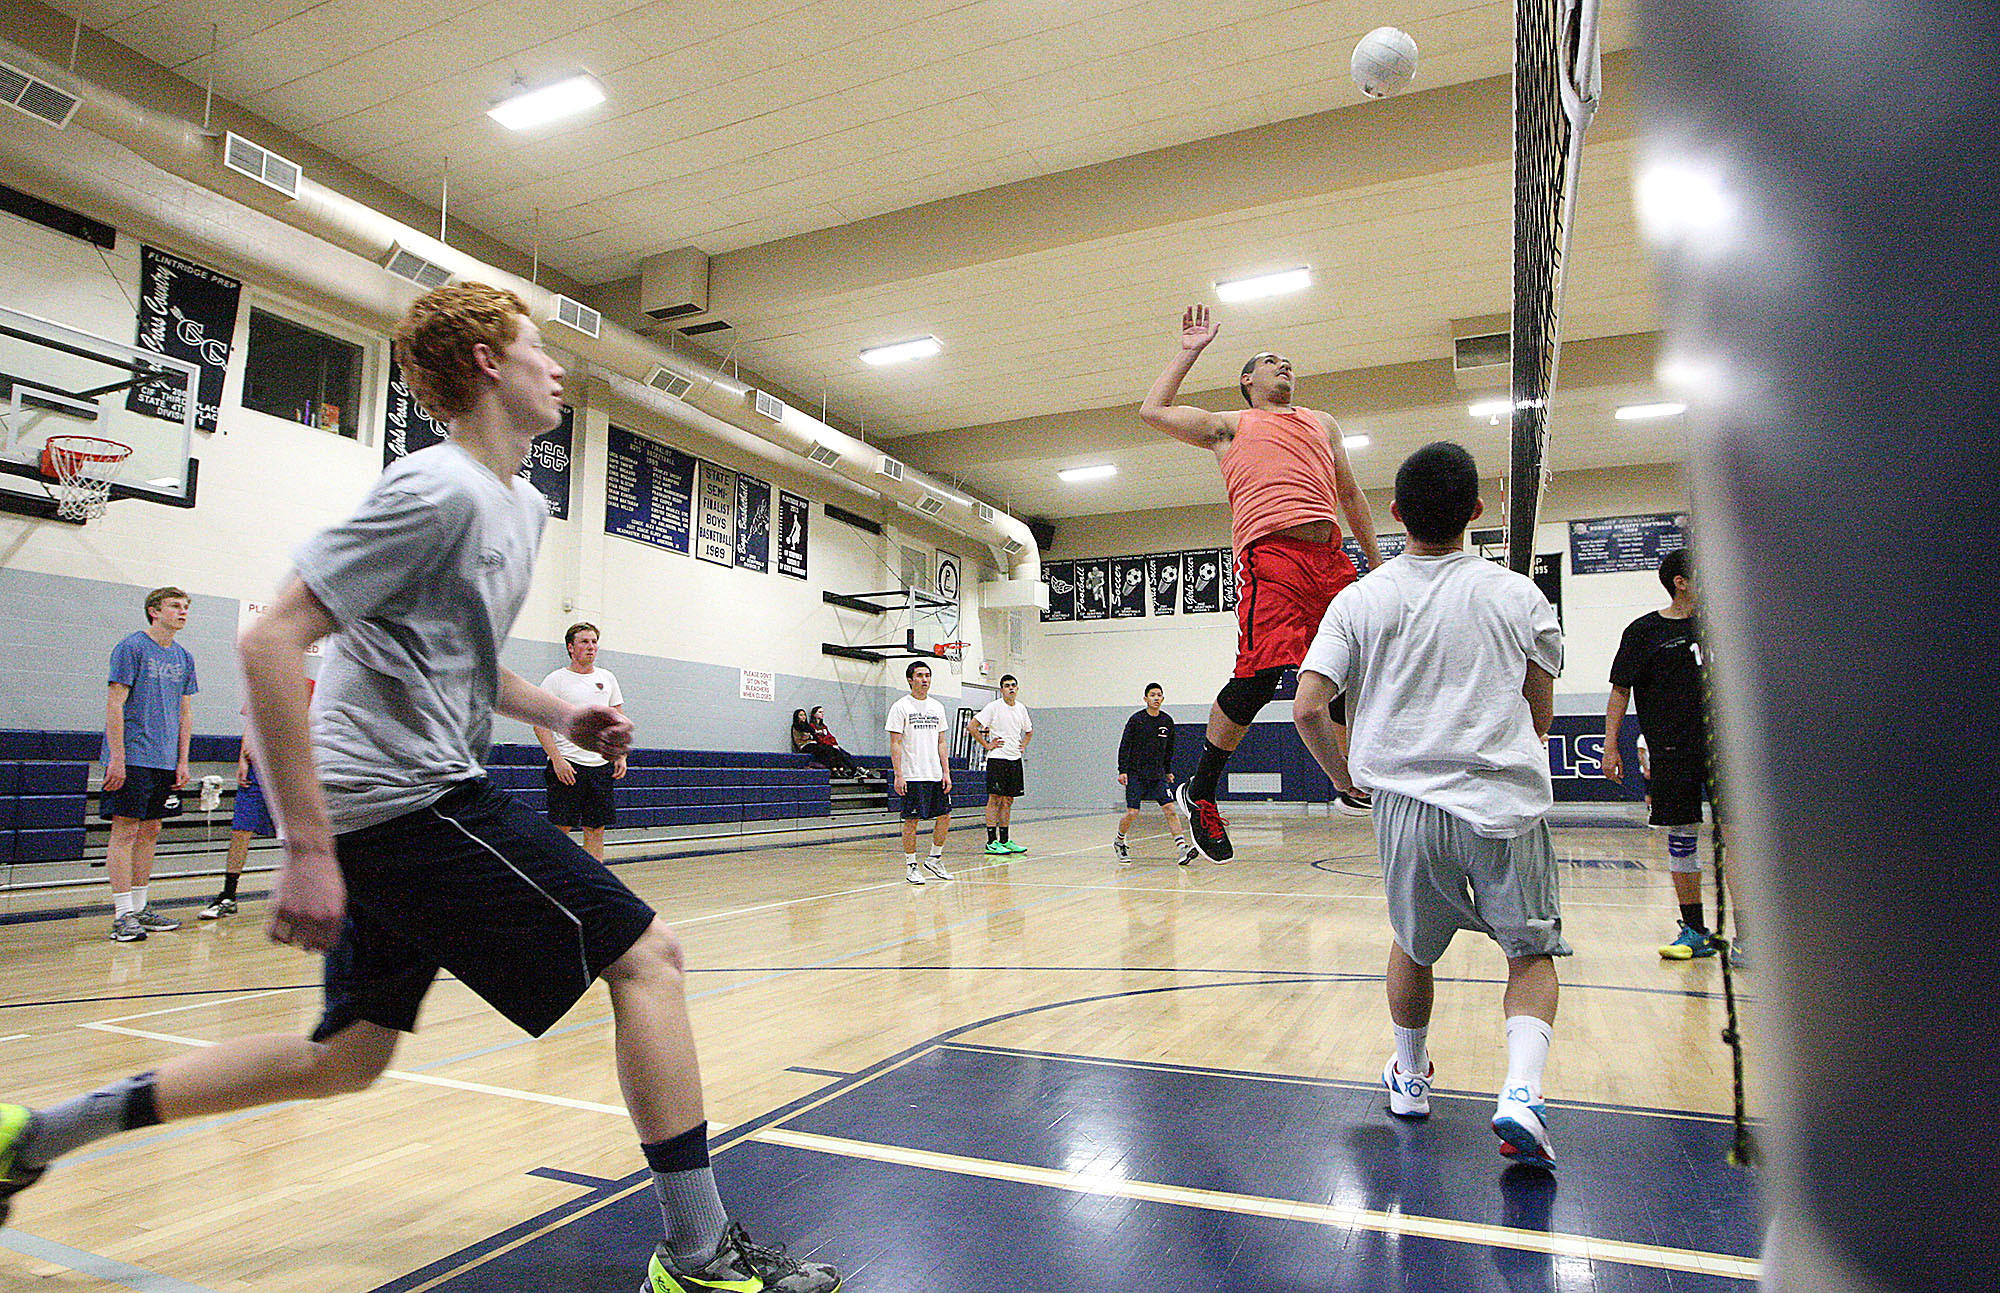 The Flintridge Prep boys' volleyball team works on setting and hitting during practice on Tuesday, February 25, 2014.